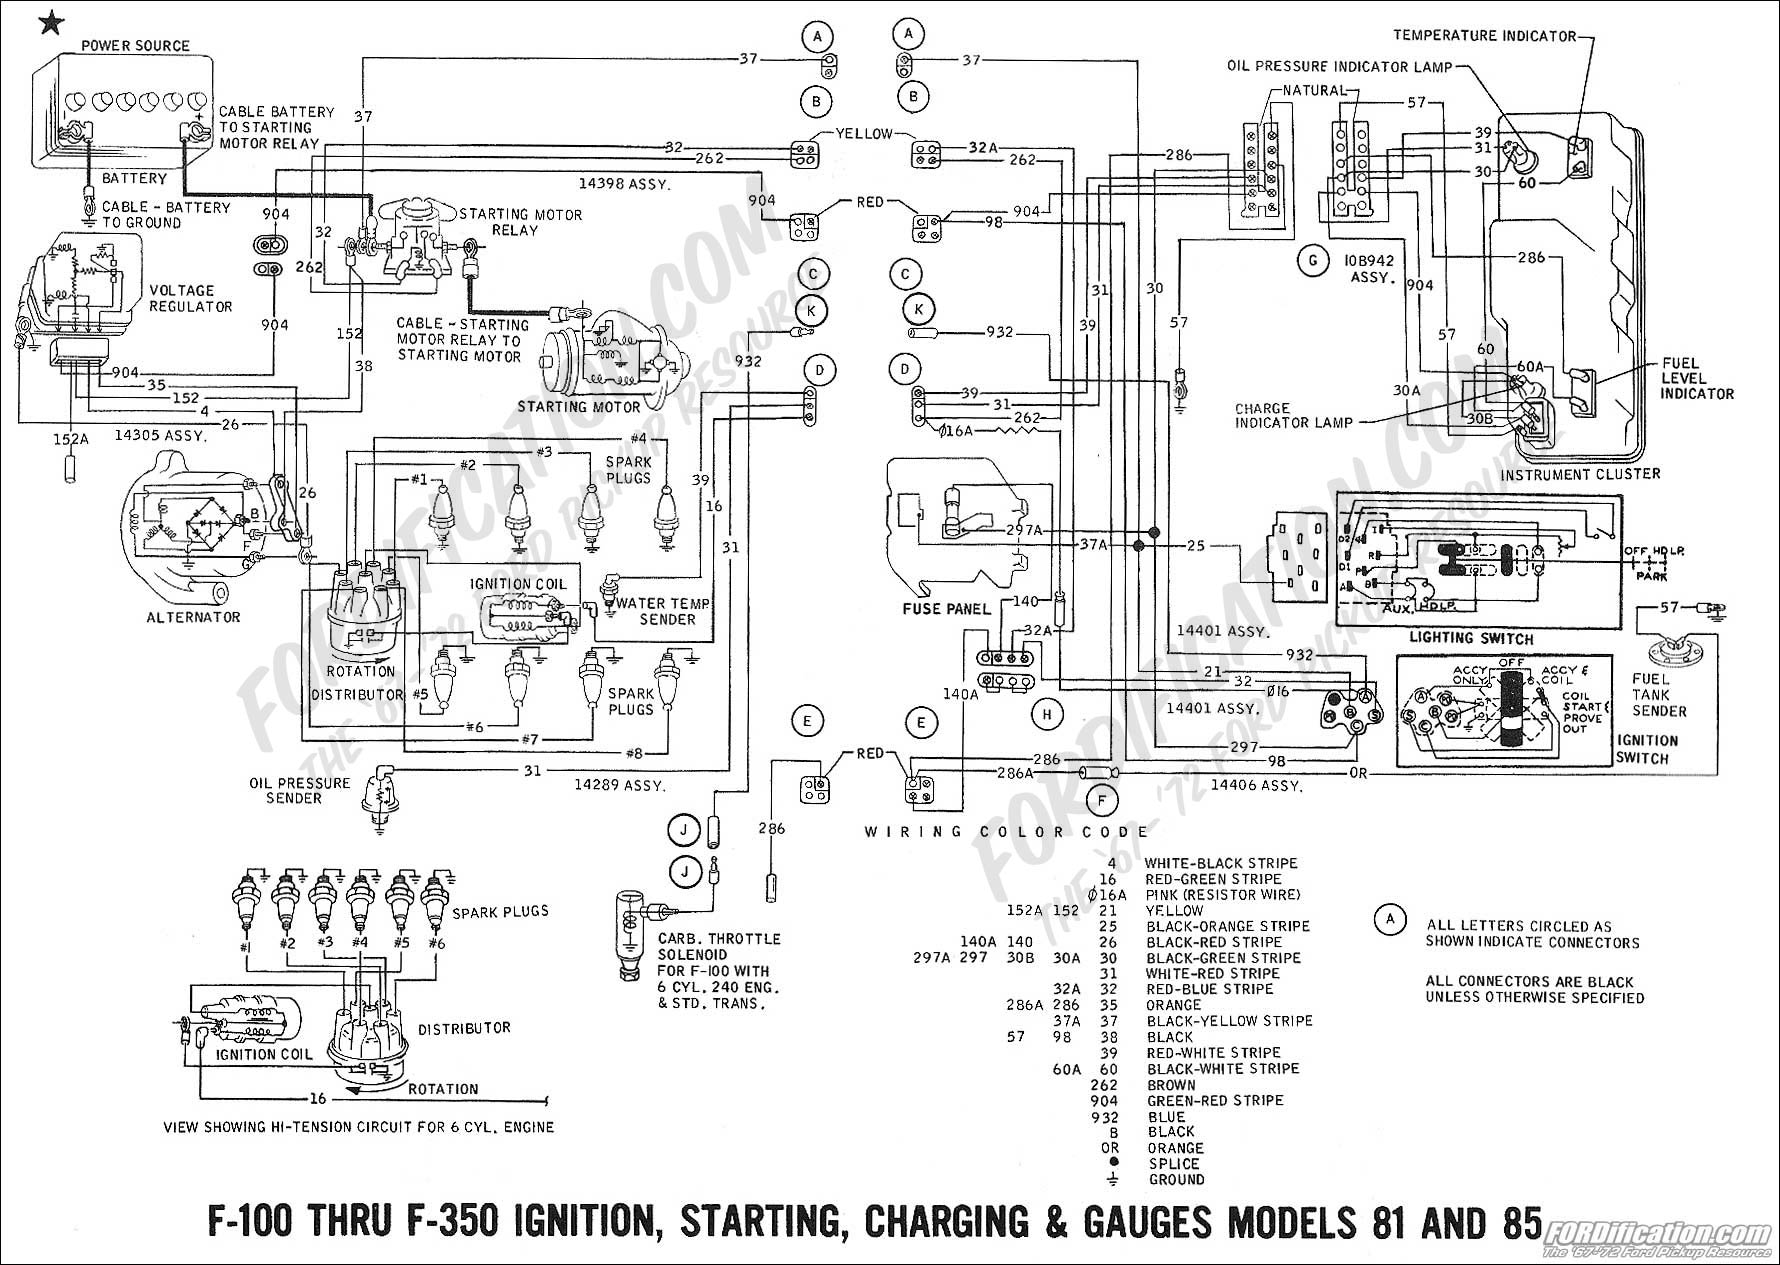 87 f250 wiring diagram free picture schematic another wiring rh benpaterson  co uk Ford F-